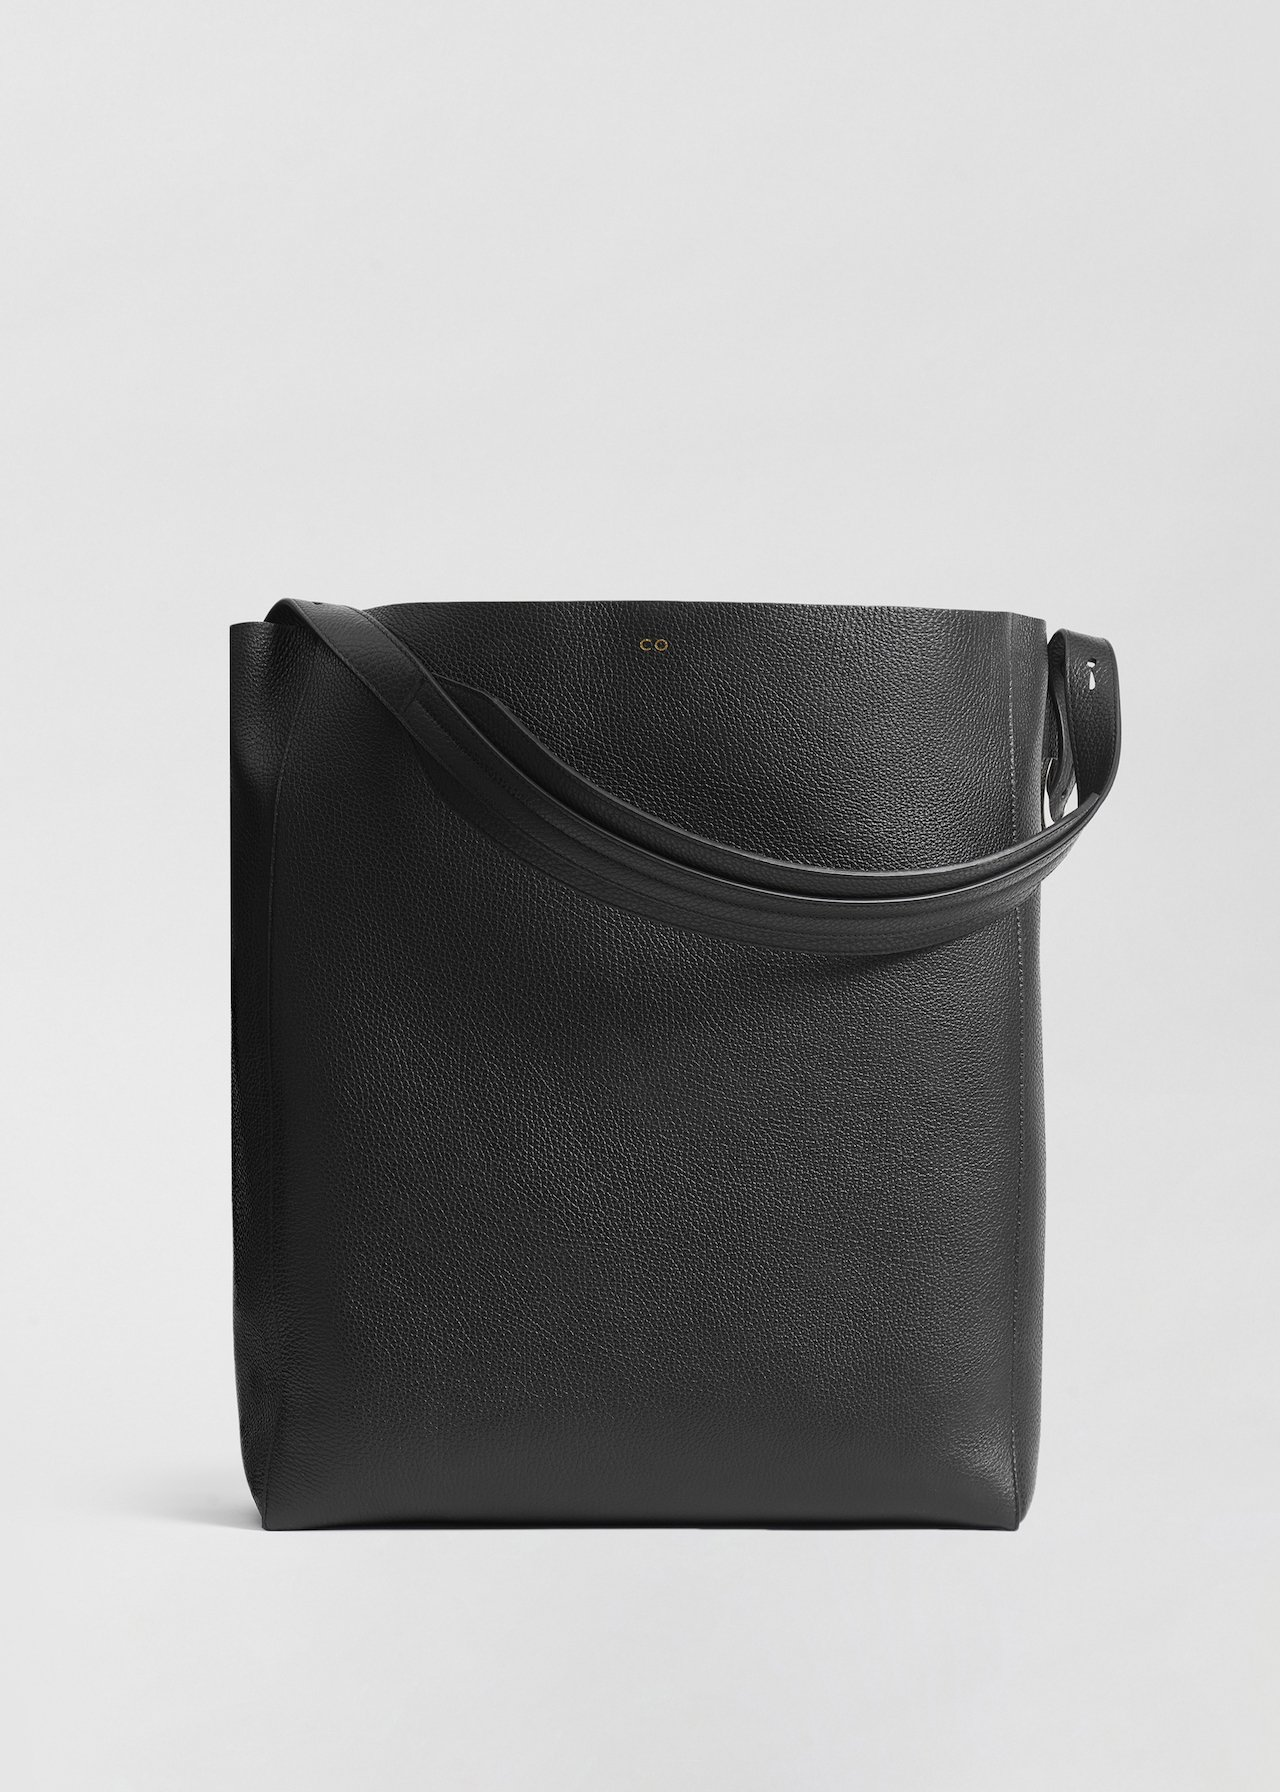 Small Classic Tote in Pebbled Leather - Black - CO